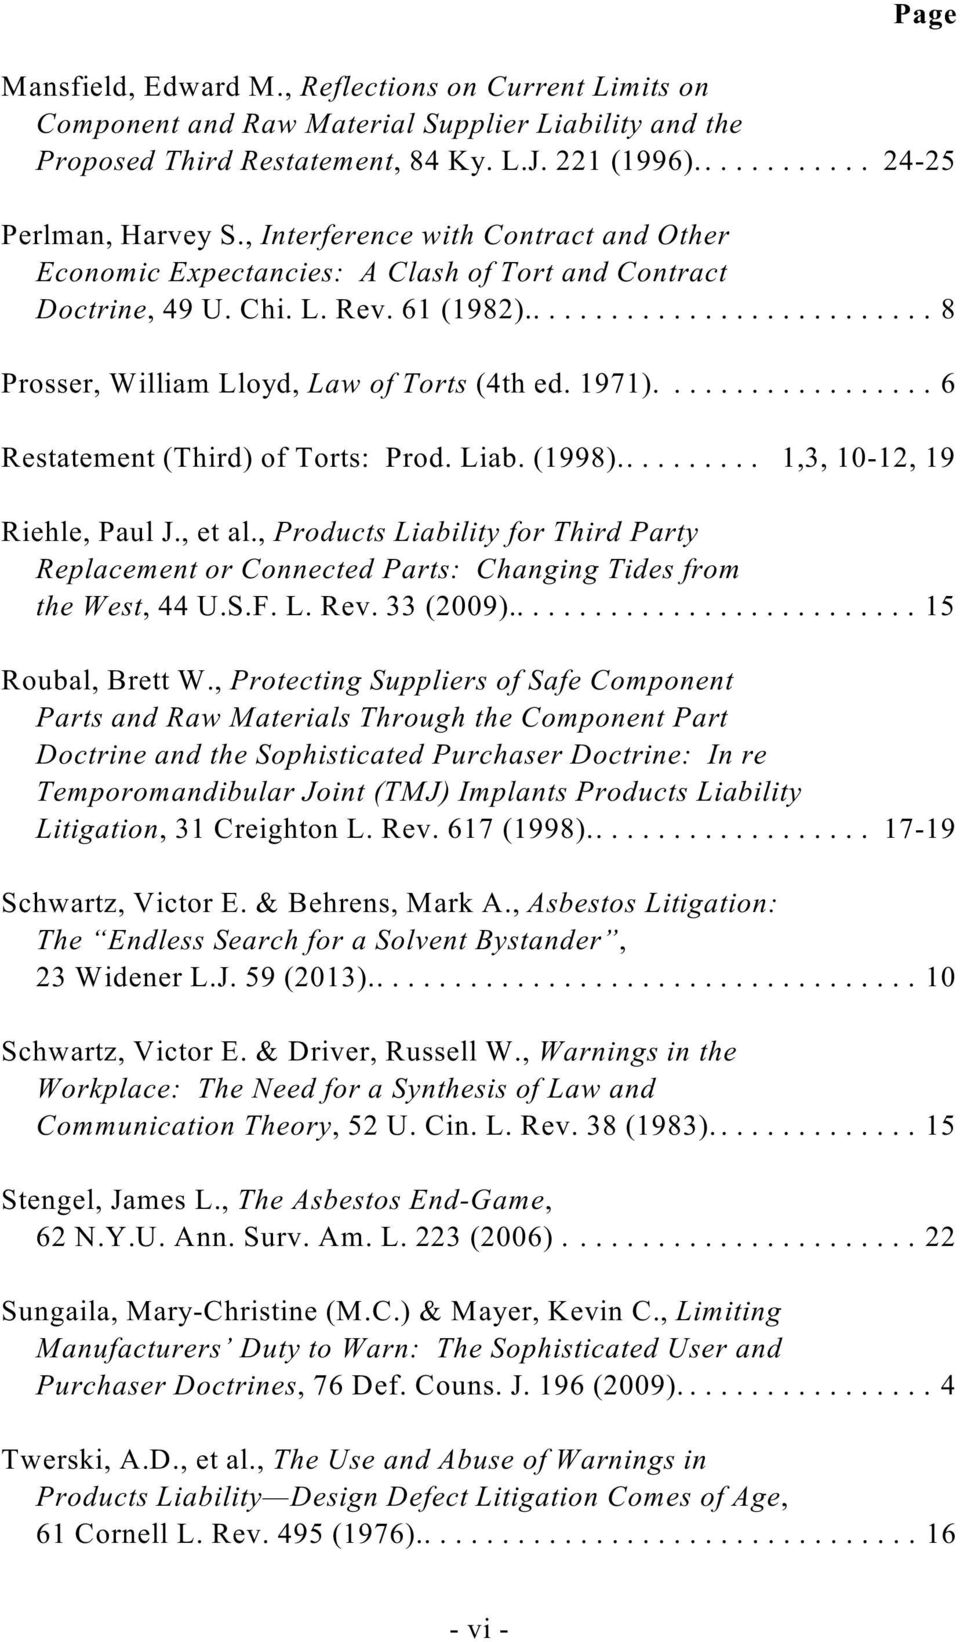 1971).................. 6 Restatement (Third) of Torts: Prod. Liab. (1998).......... 1,3, 10-12, 19 Riehle, Paul J., et al.